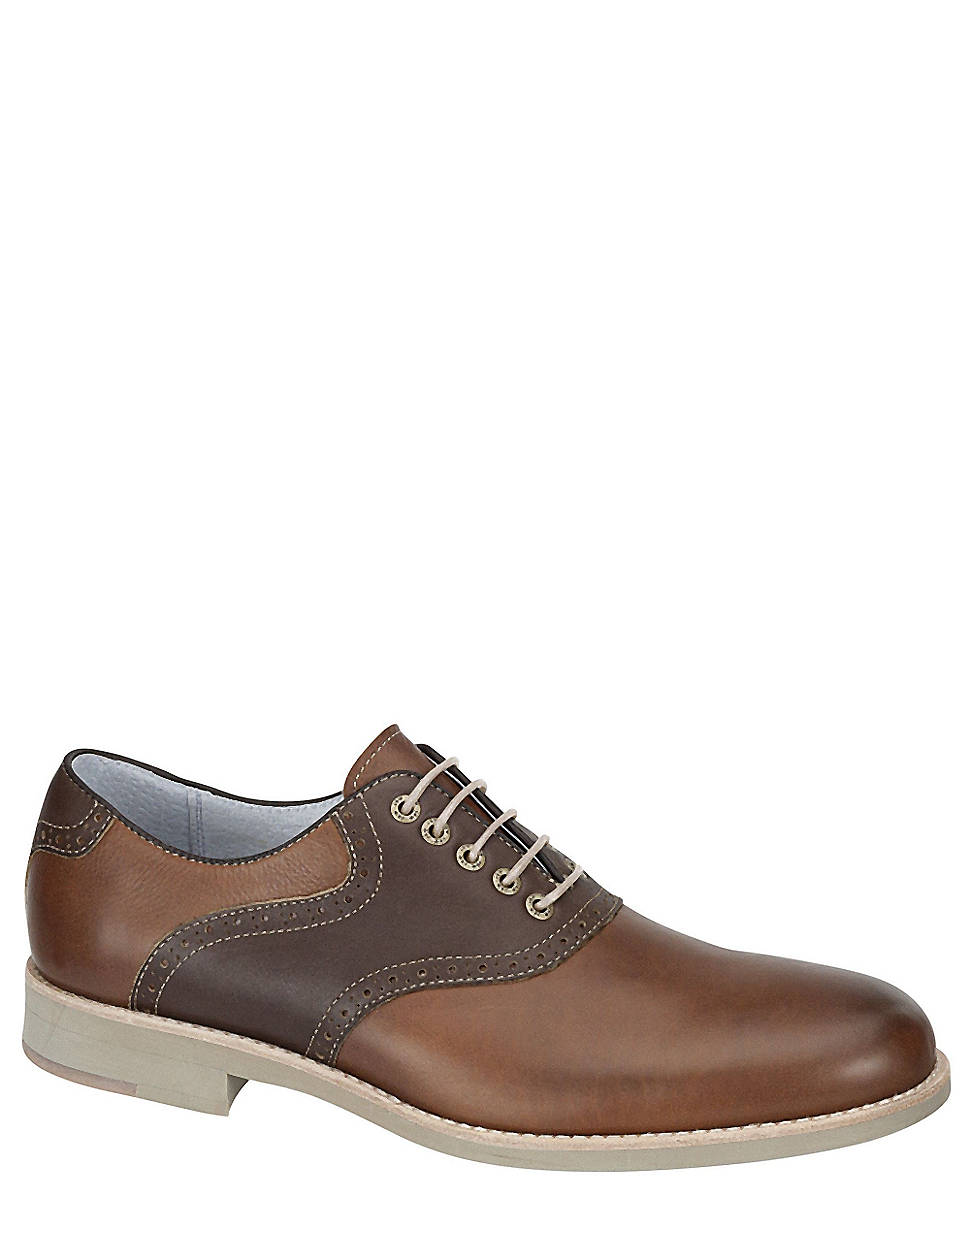 Johnston And Murphy Brown Shoes Mens Dress Sandals